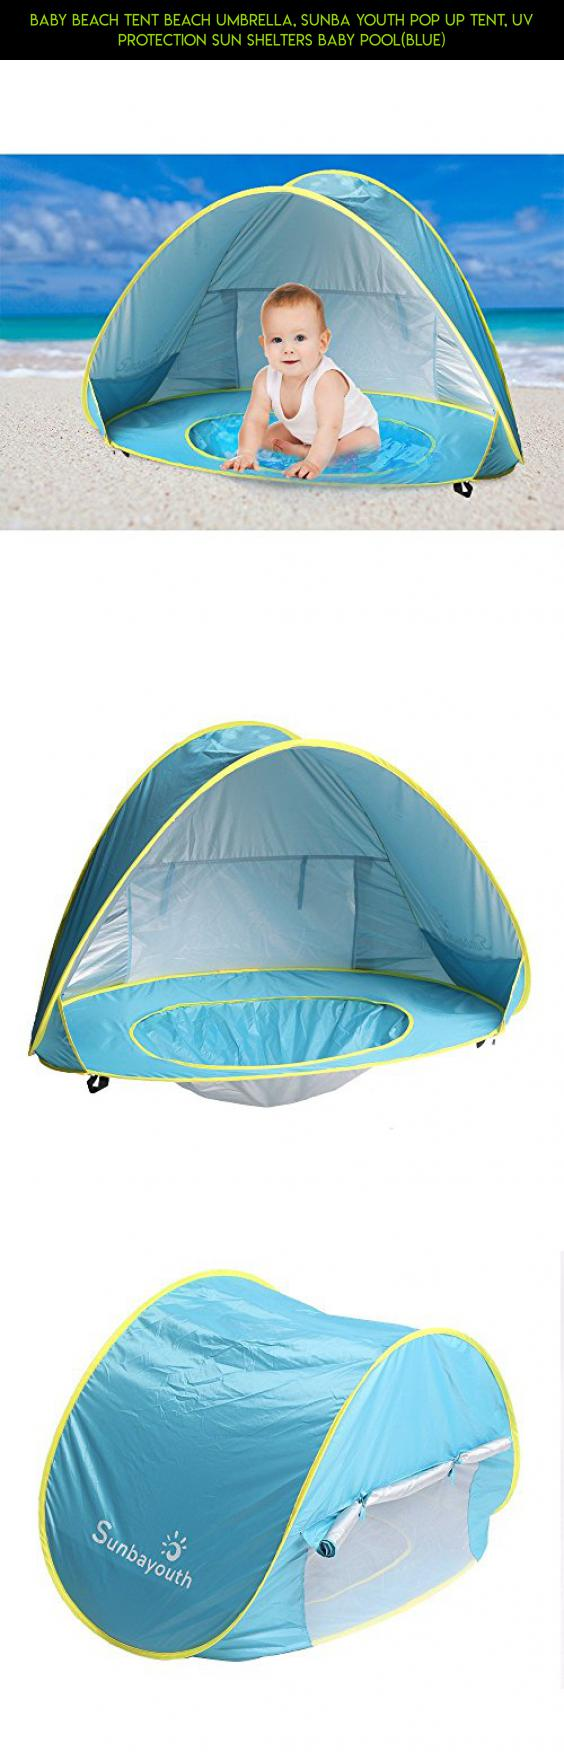 Baby Beach Tent Beach Umbrella Sunba Youth Pop Up Tent UV Protection Sun Shelters  sc 1 st  Pinterest & Baby Beach Tent Beach Umbrella Sunba Youth Pop Up Tent UV ...